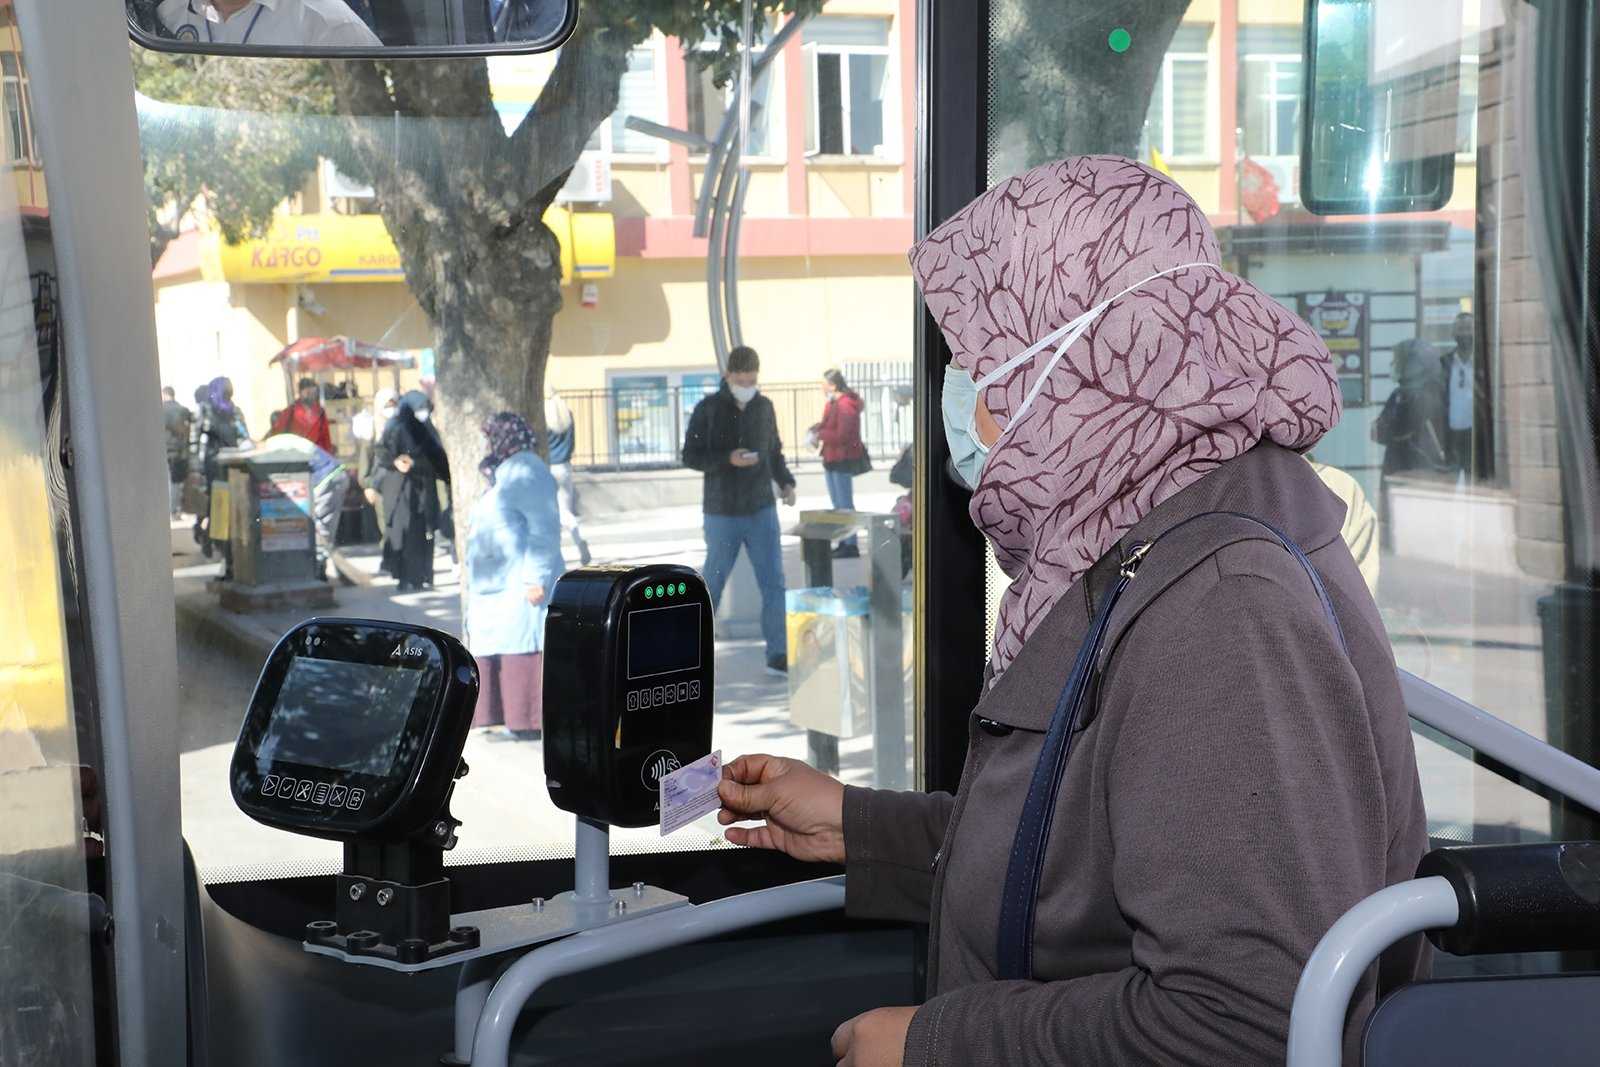 A passenger scans her electronic pass in a bus, in Afyon, western Turkey, Oct. 5, 2021. (AA Photo)